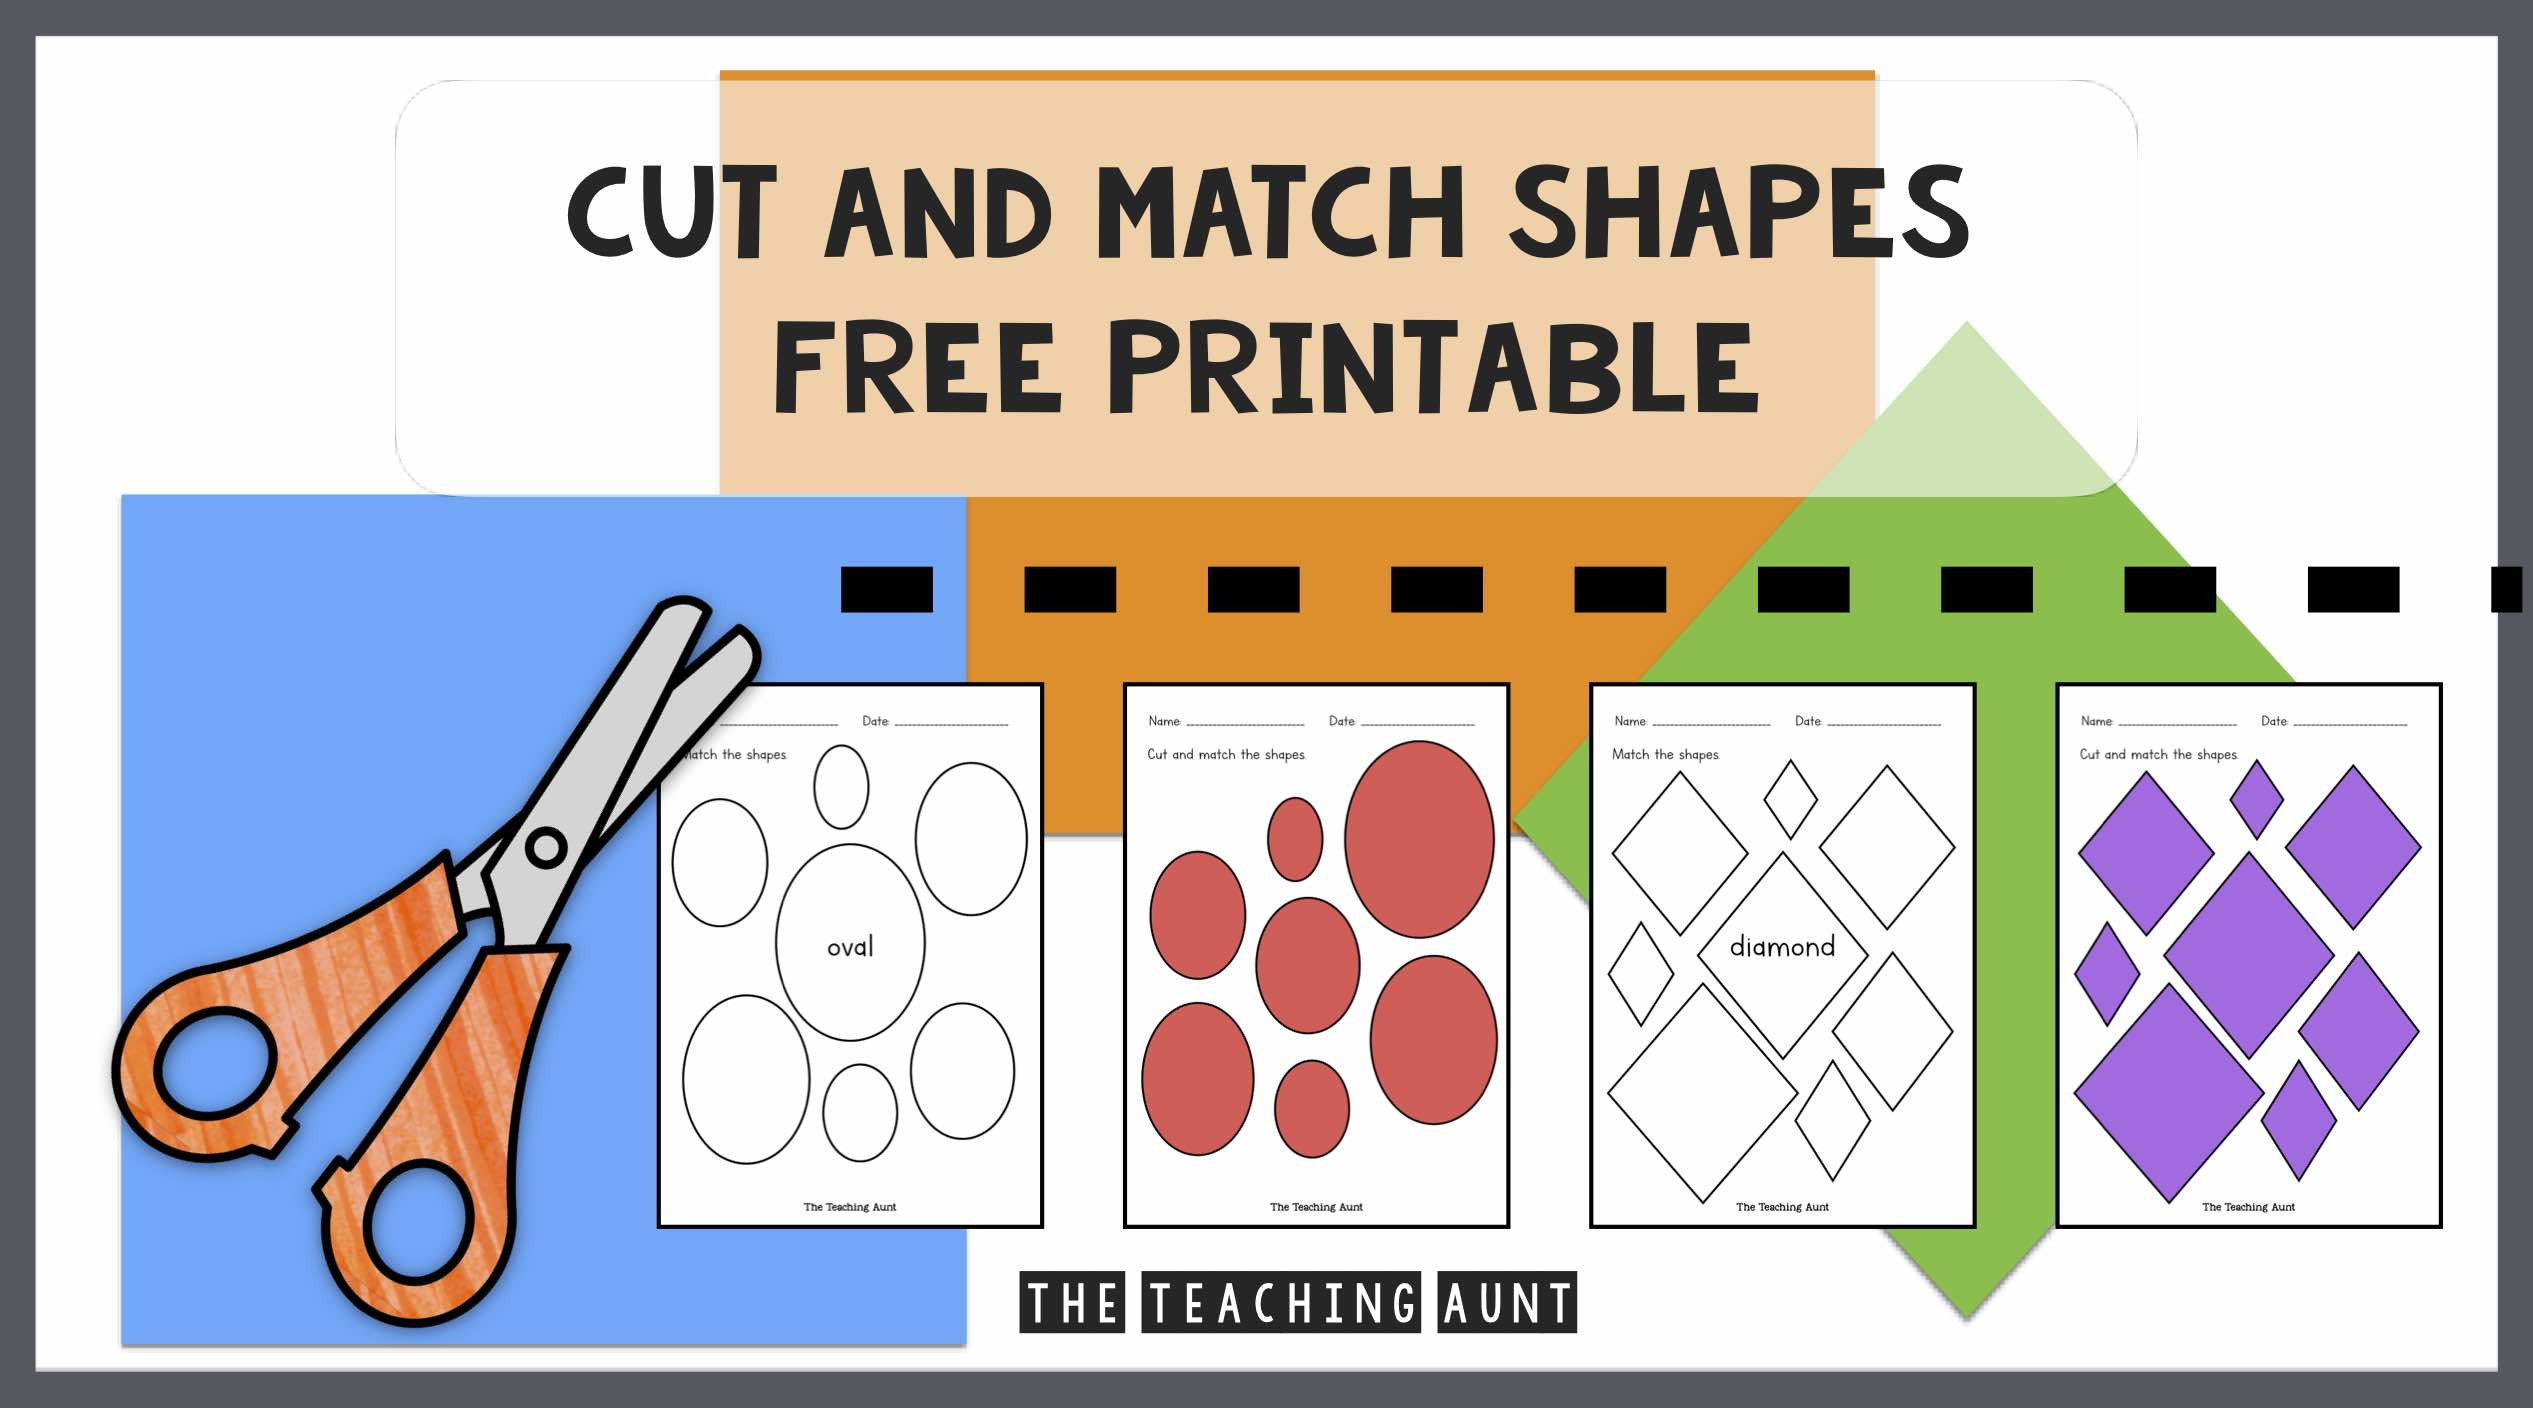 Free Printable Cutting Worksheets Cut and Match Shapes Worksheets the Teaching Aunt